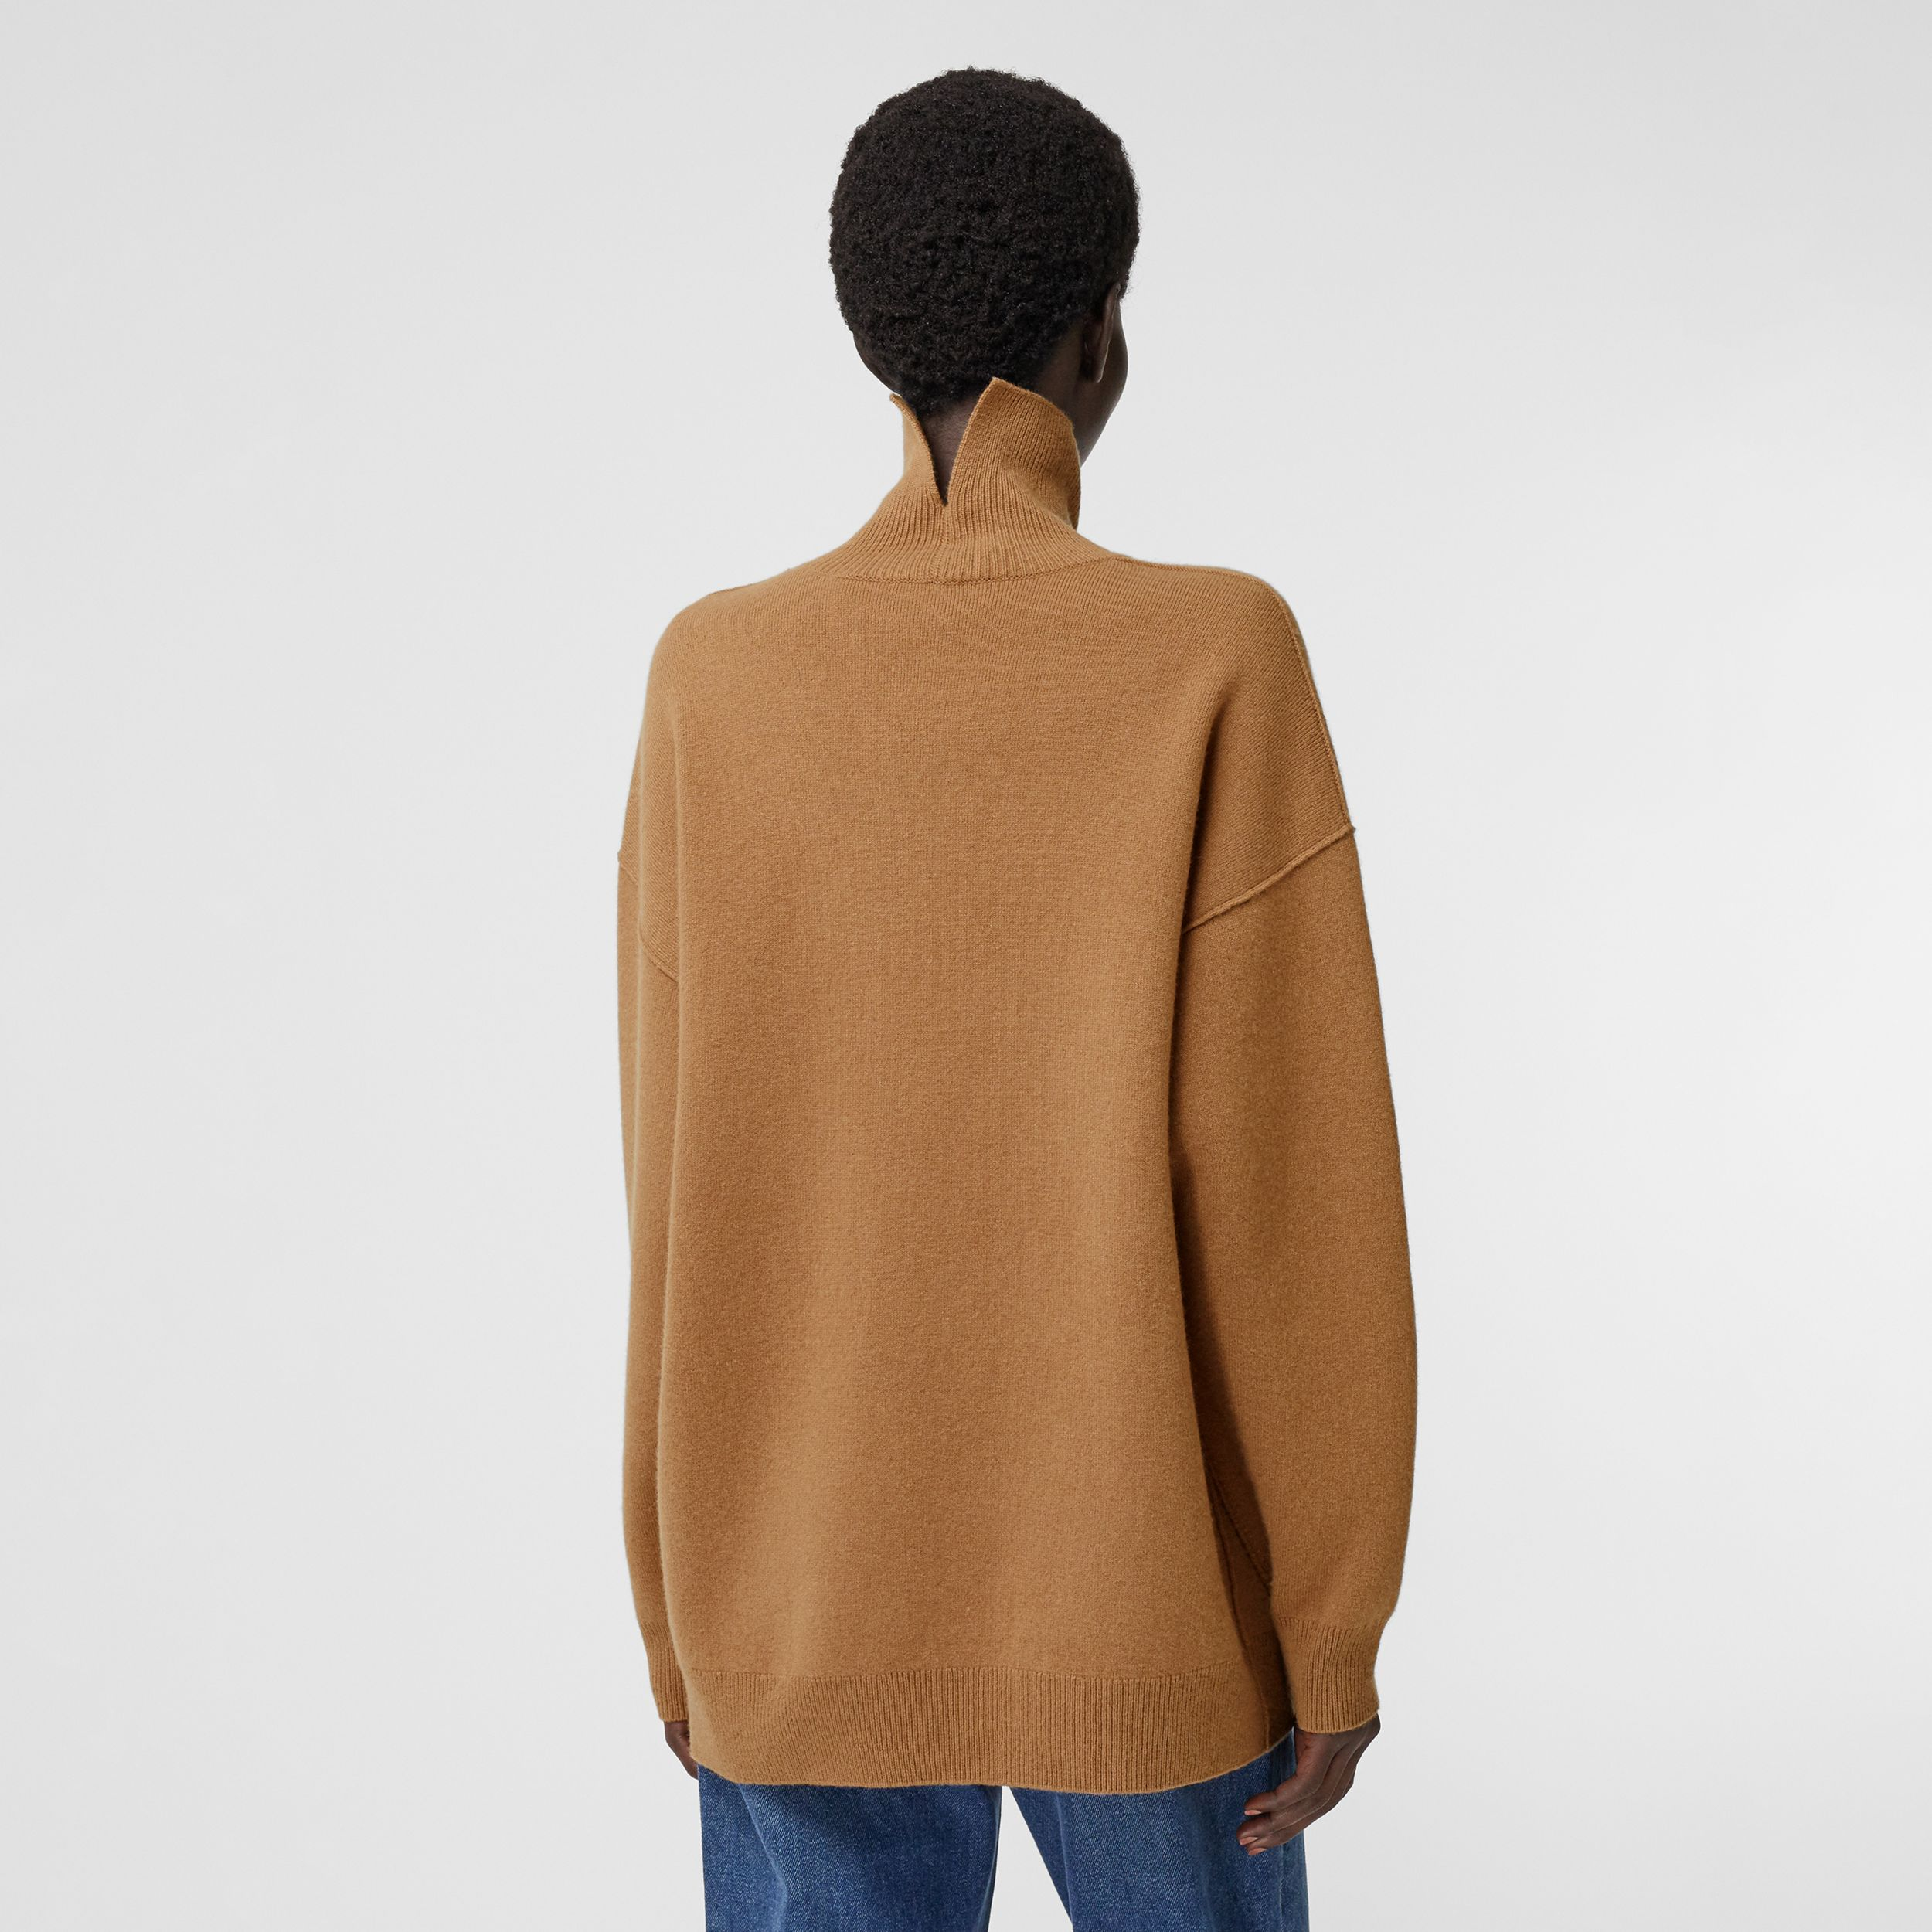 Monogram Motif Cashmere Blend Funnel Neck Sweater in Camel - Women | Burberry Australia - 2